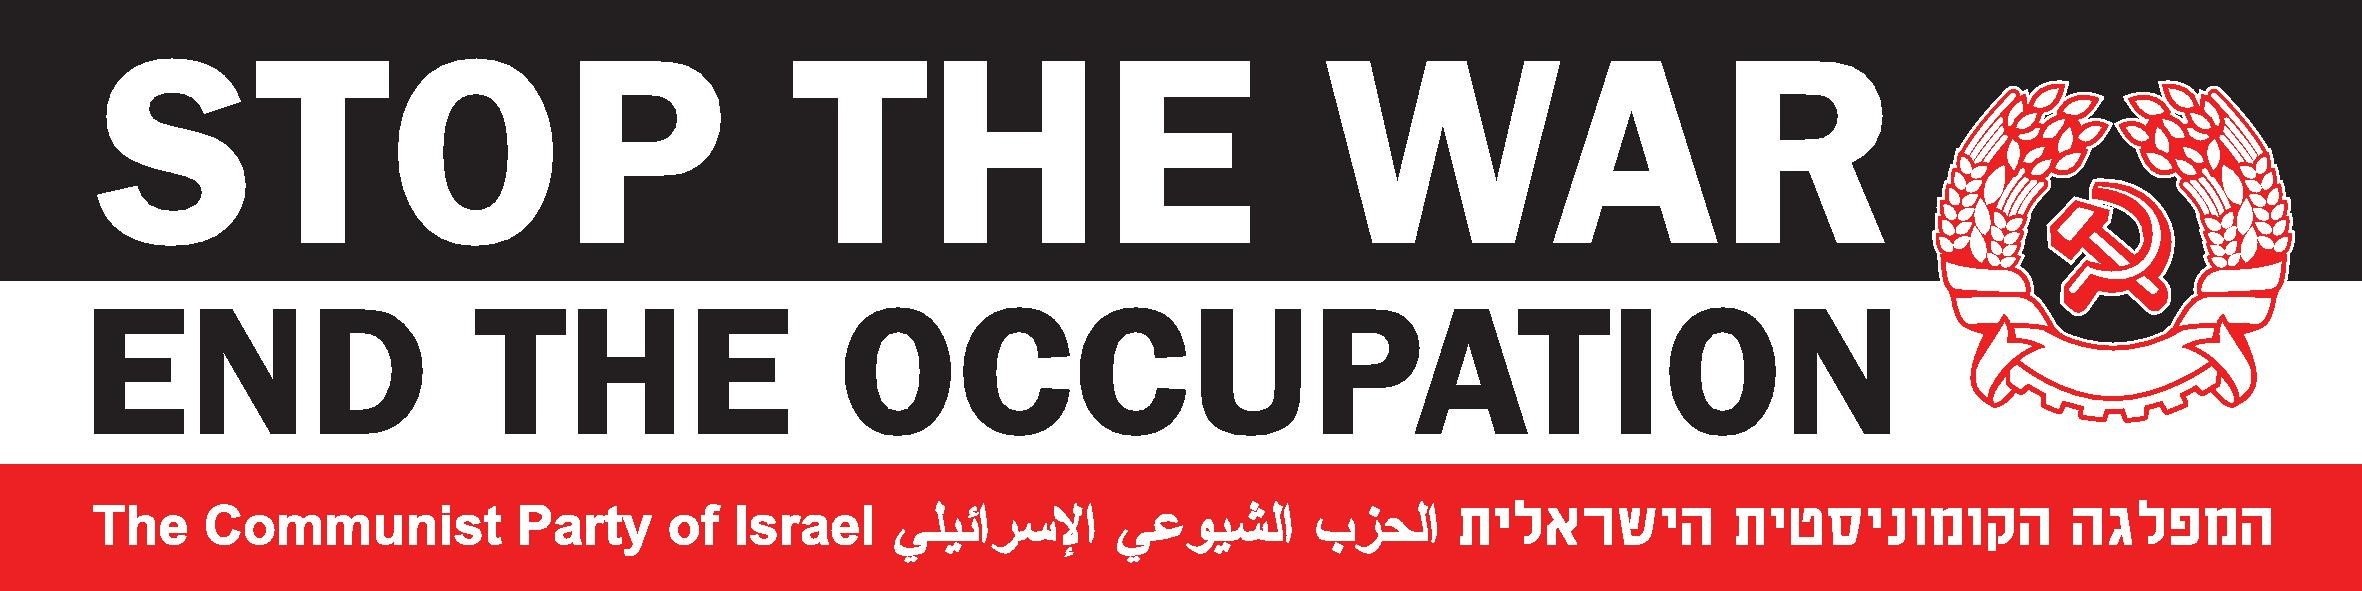 Stop the war End the occupation